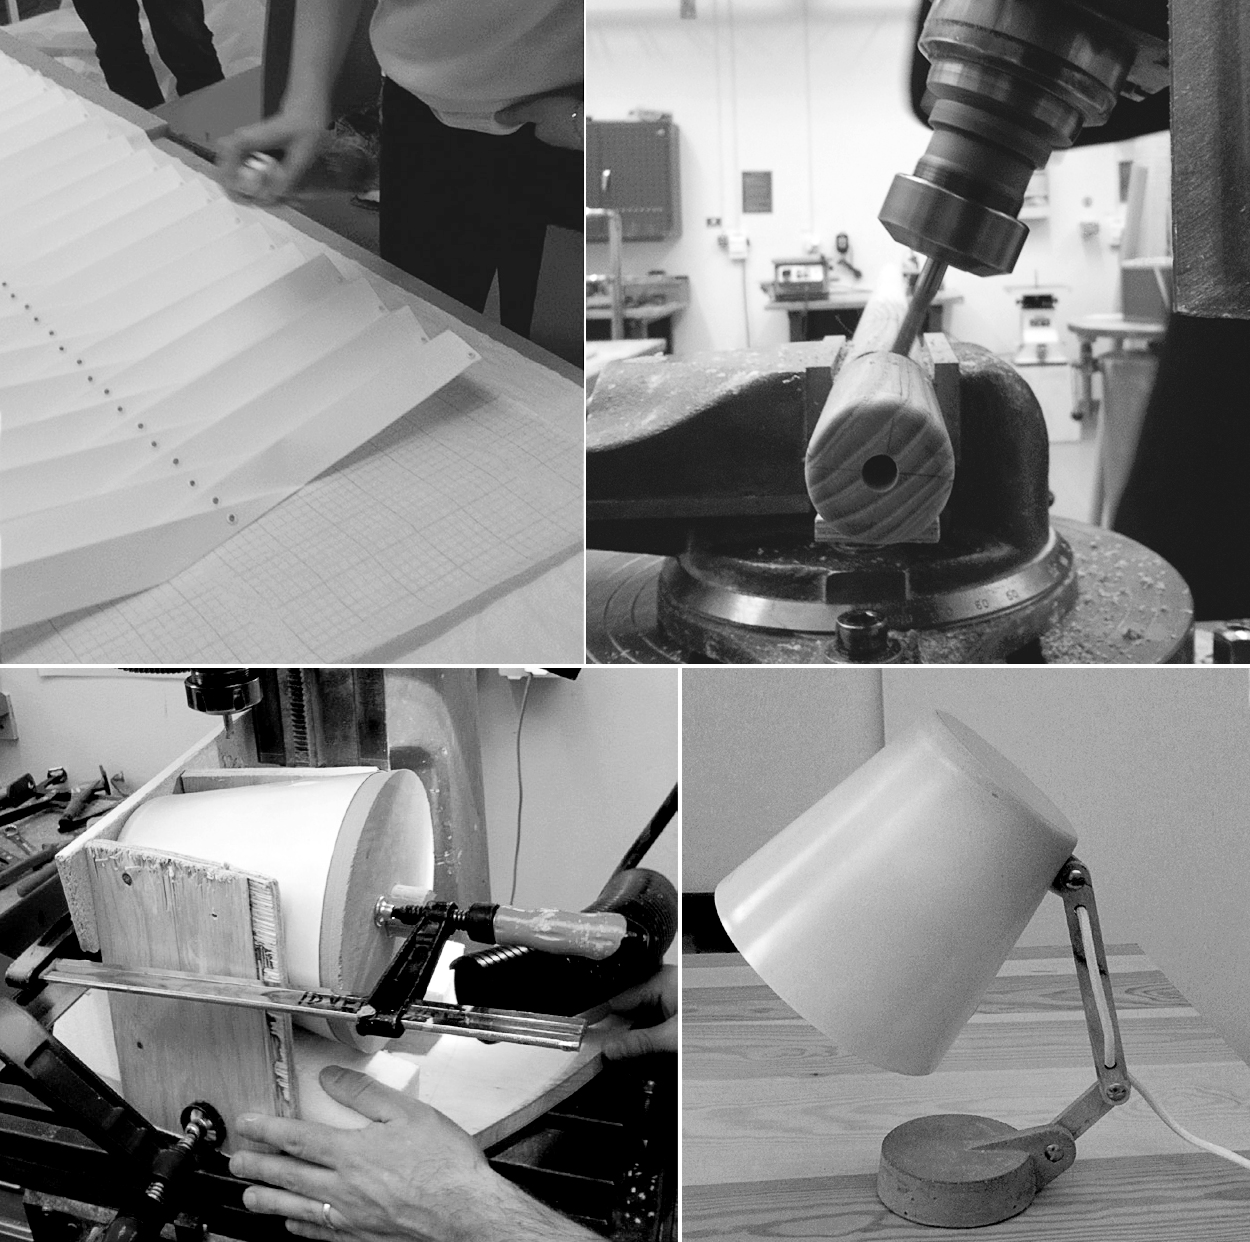 Process - All pieces were designed and prototyped by us as a side project to our regular studies.This approach brought as close to the materiality of the objects and enabled us to think with our hands.